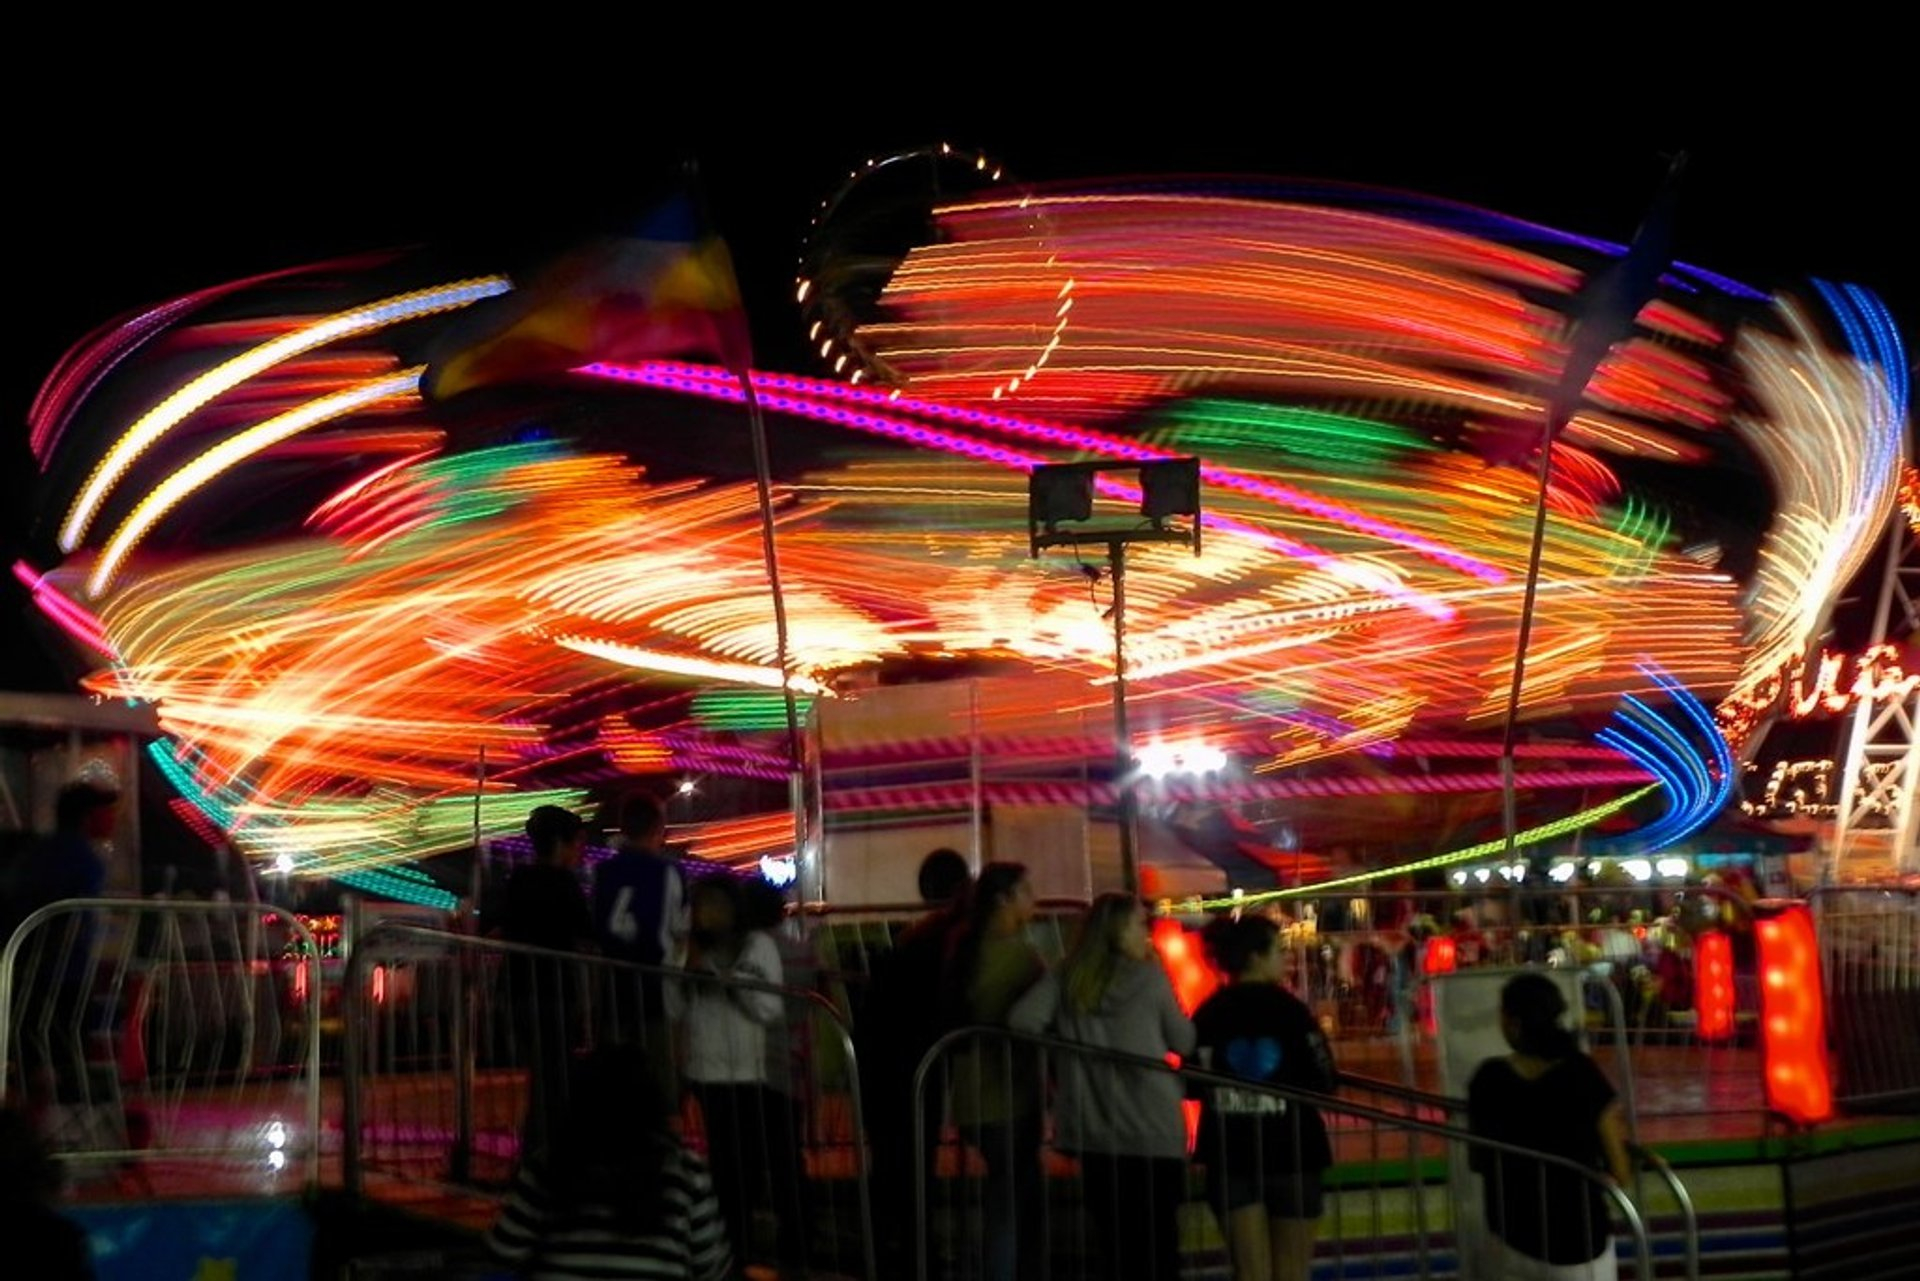 South Florida Fair 2021 – Dates & Map Regarding Florida State Fairgrounds Events 2021